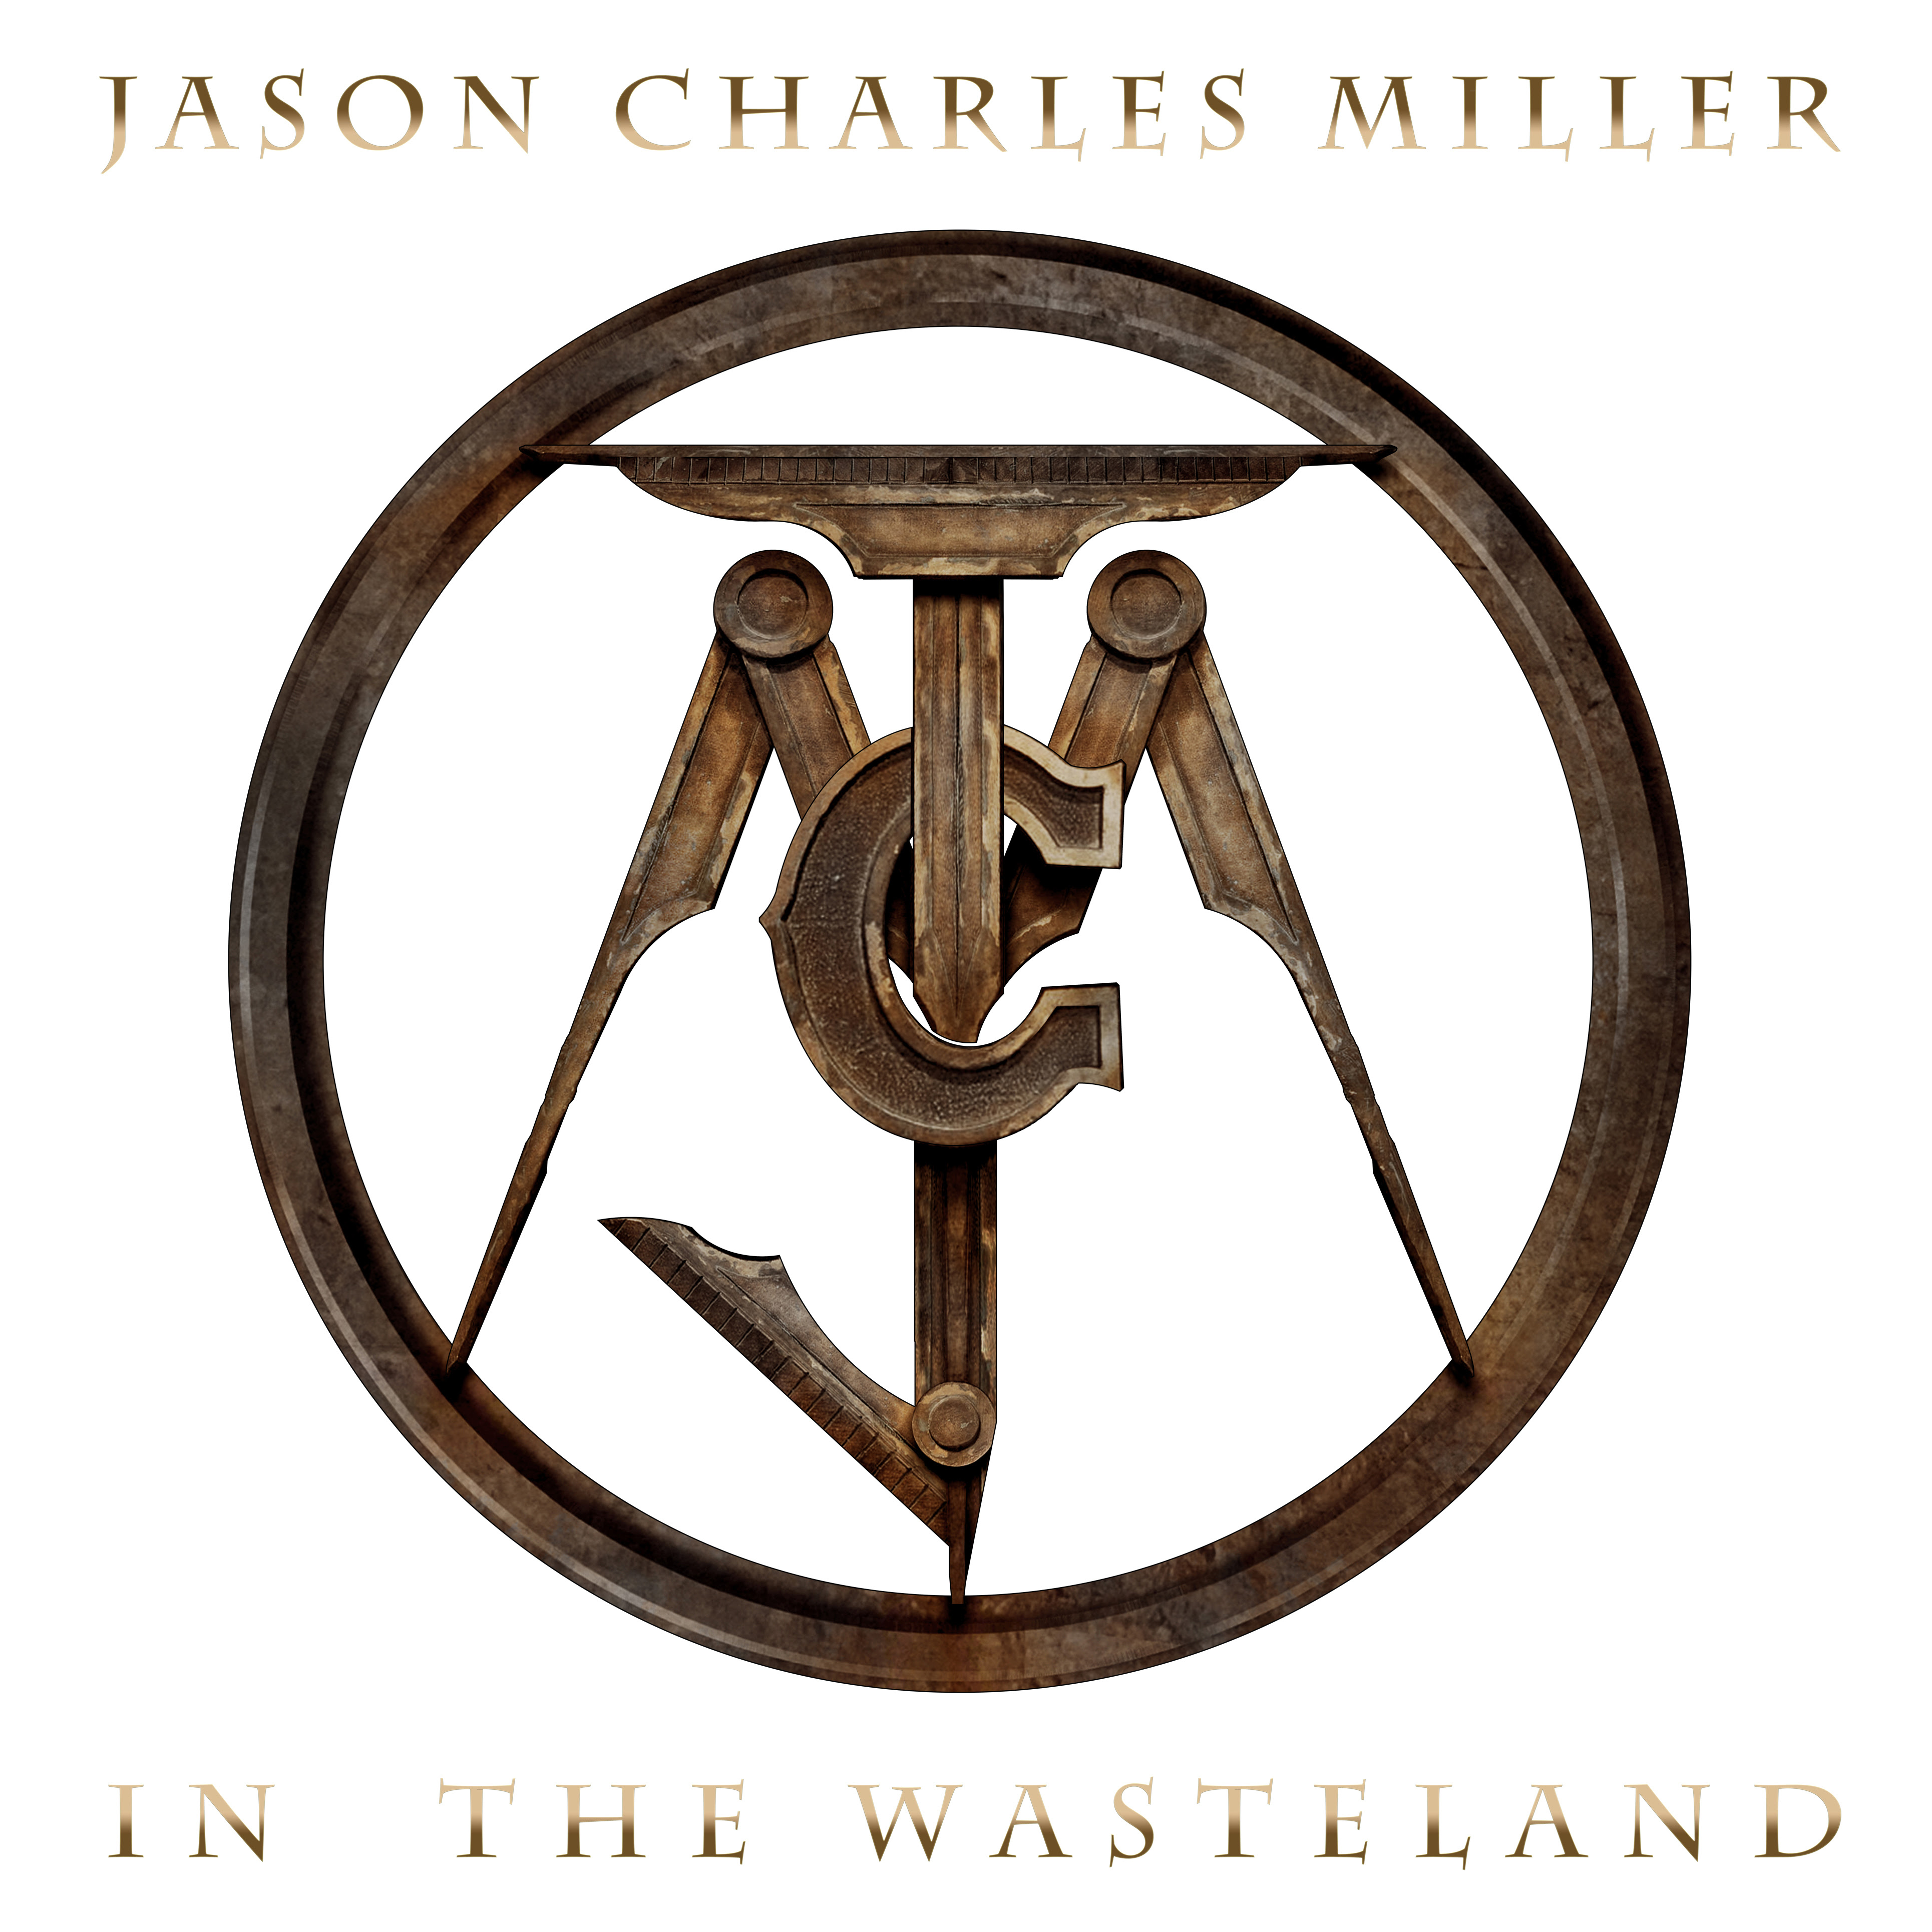 Jason-Charles-Miller-In-The-Wasteland.jpeg